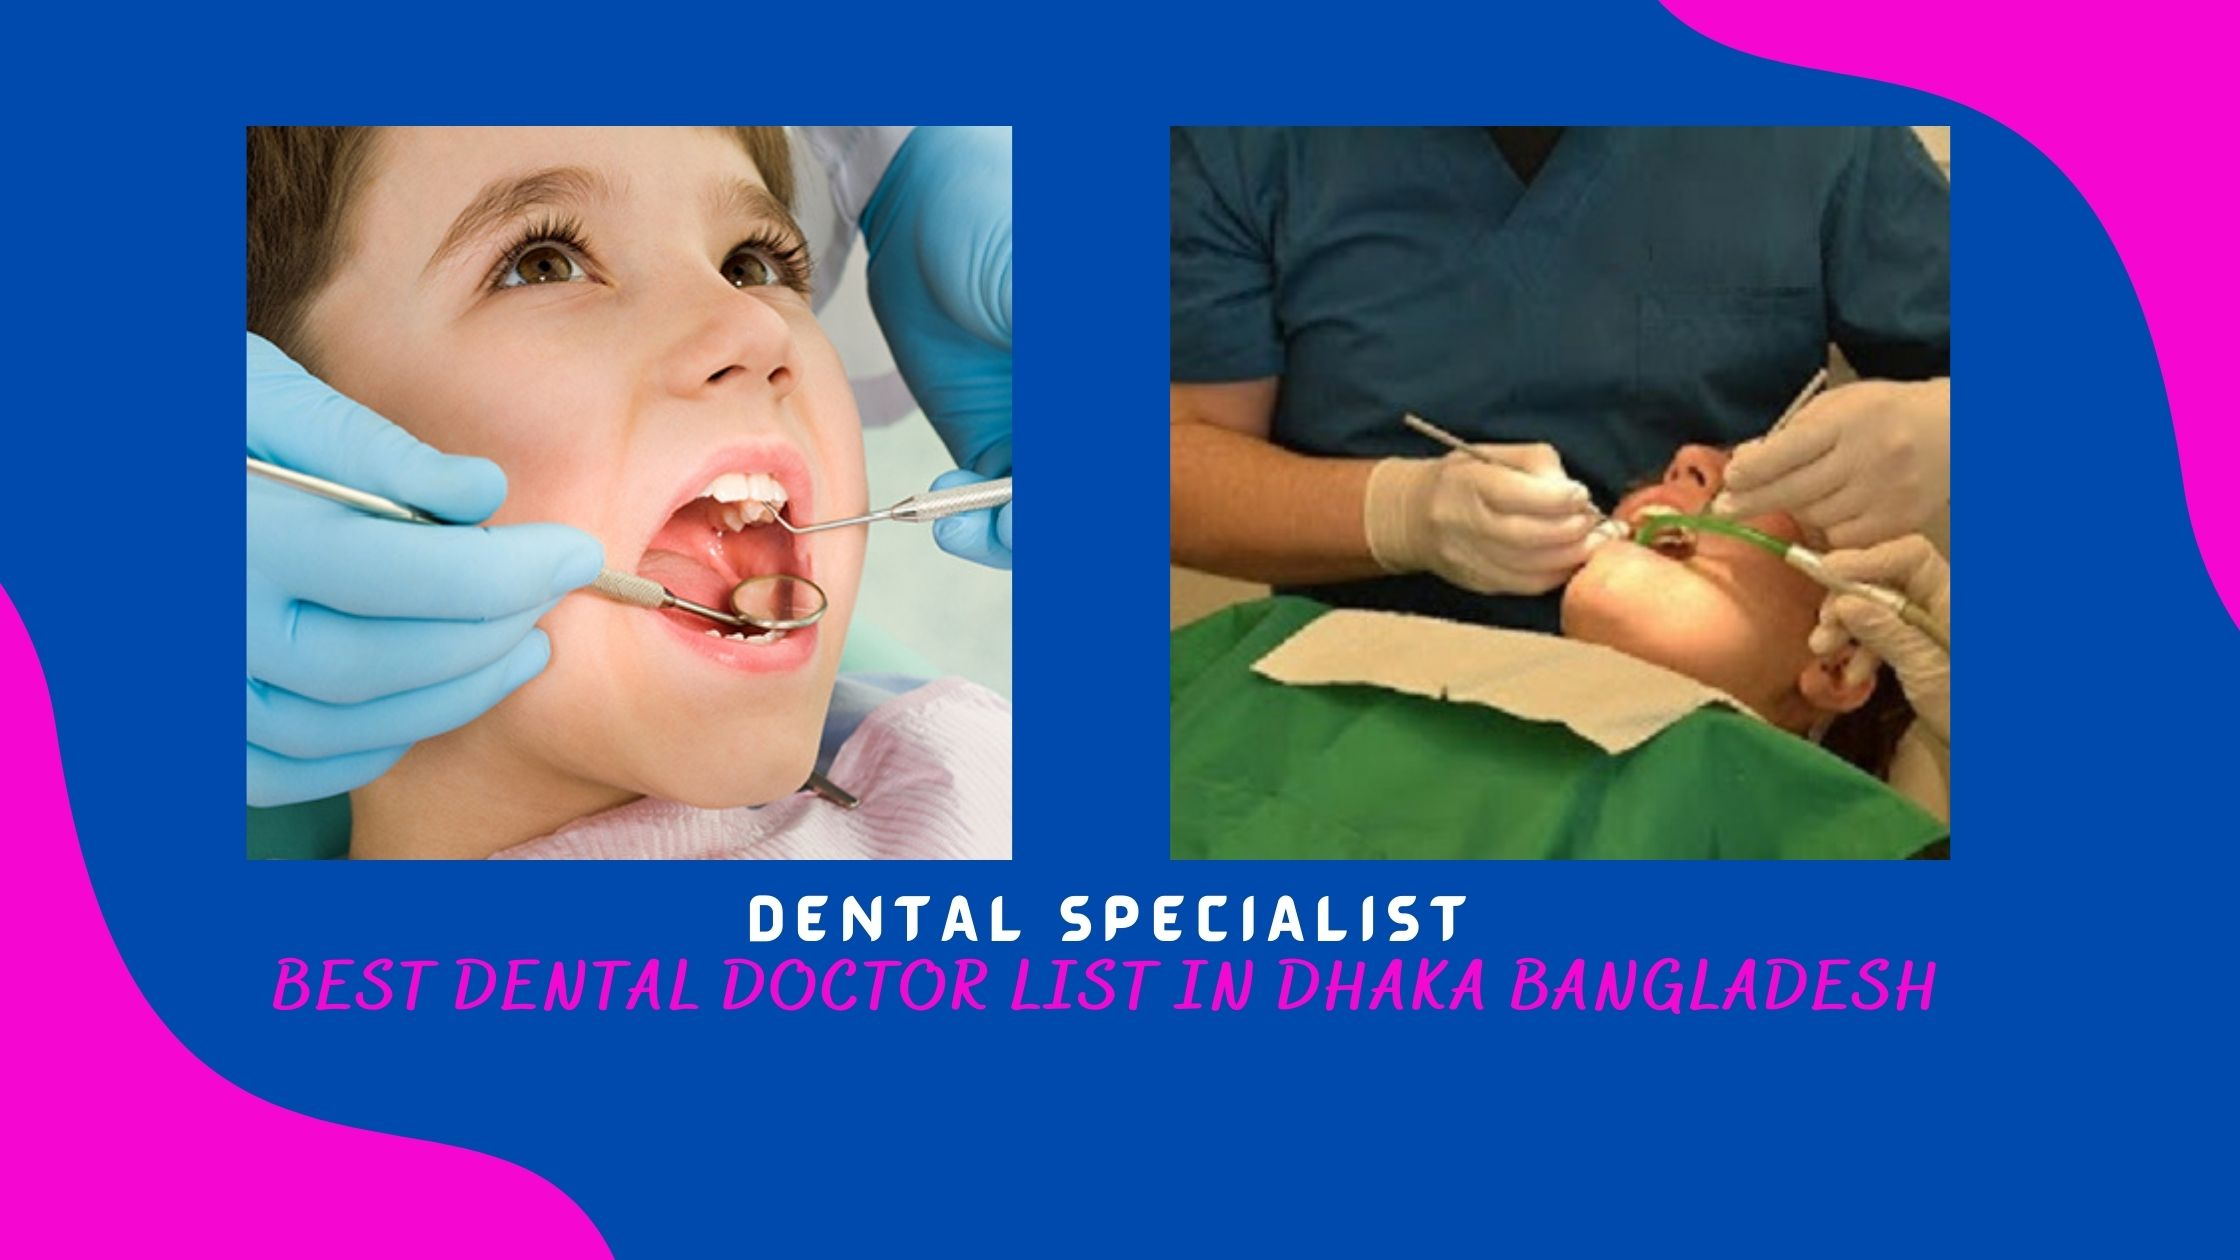 BEST Dental Doctor LIST With Consulting Address AND Contacts